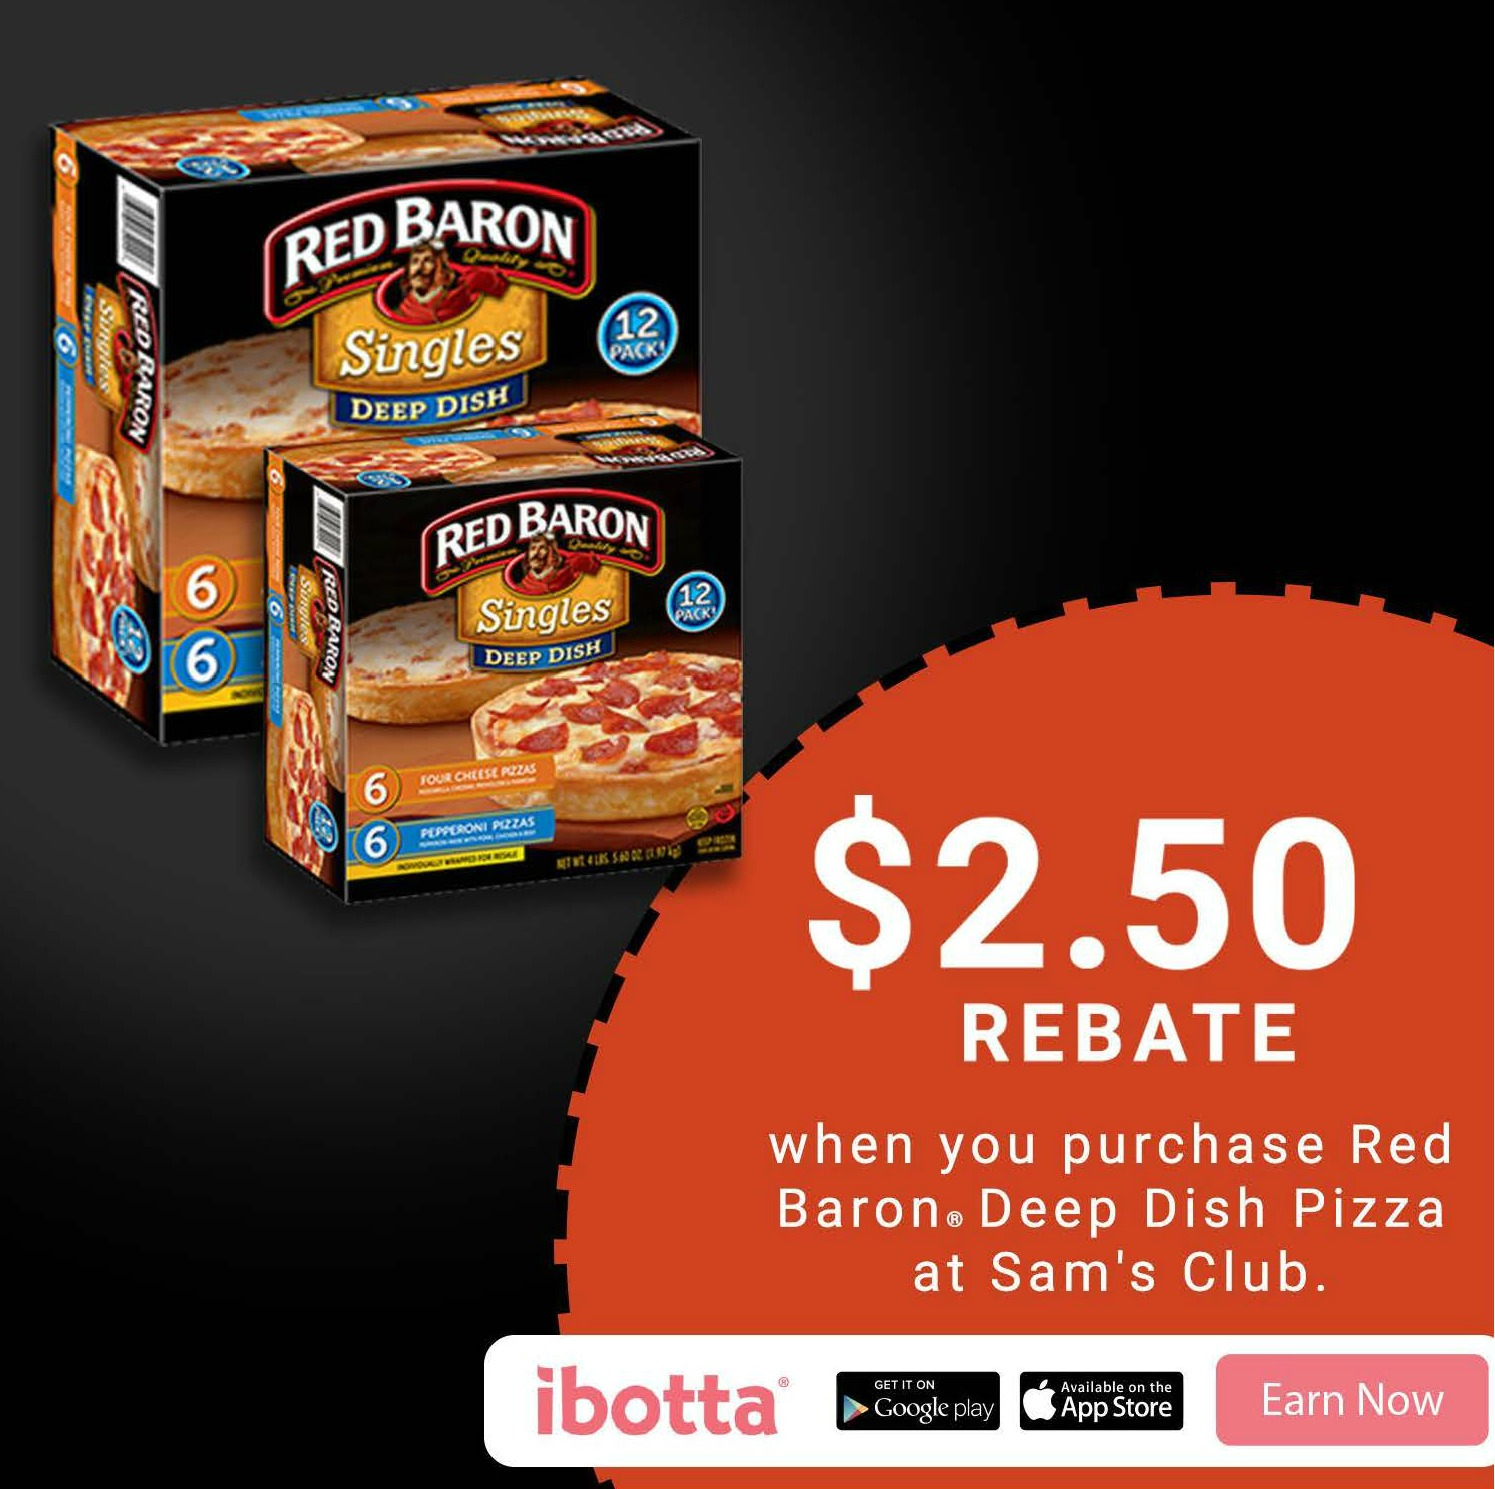 Red Baron Pizza at Sam's Club offer, check it out!